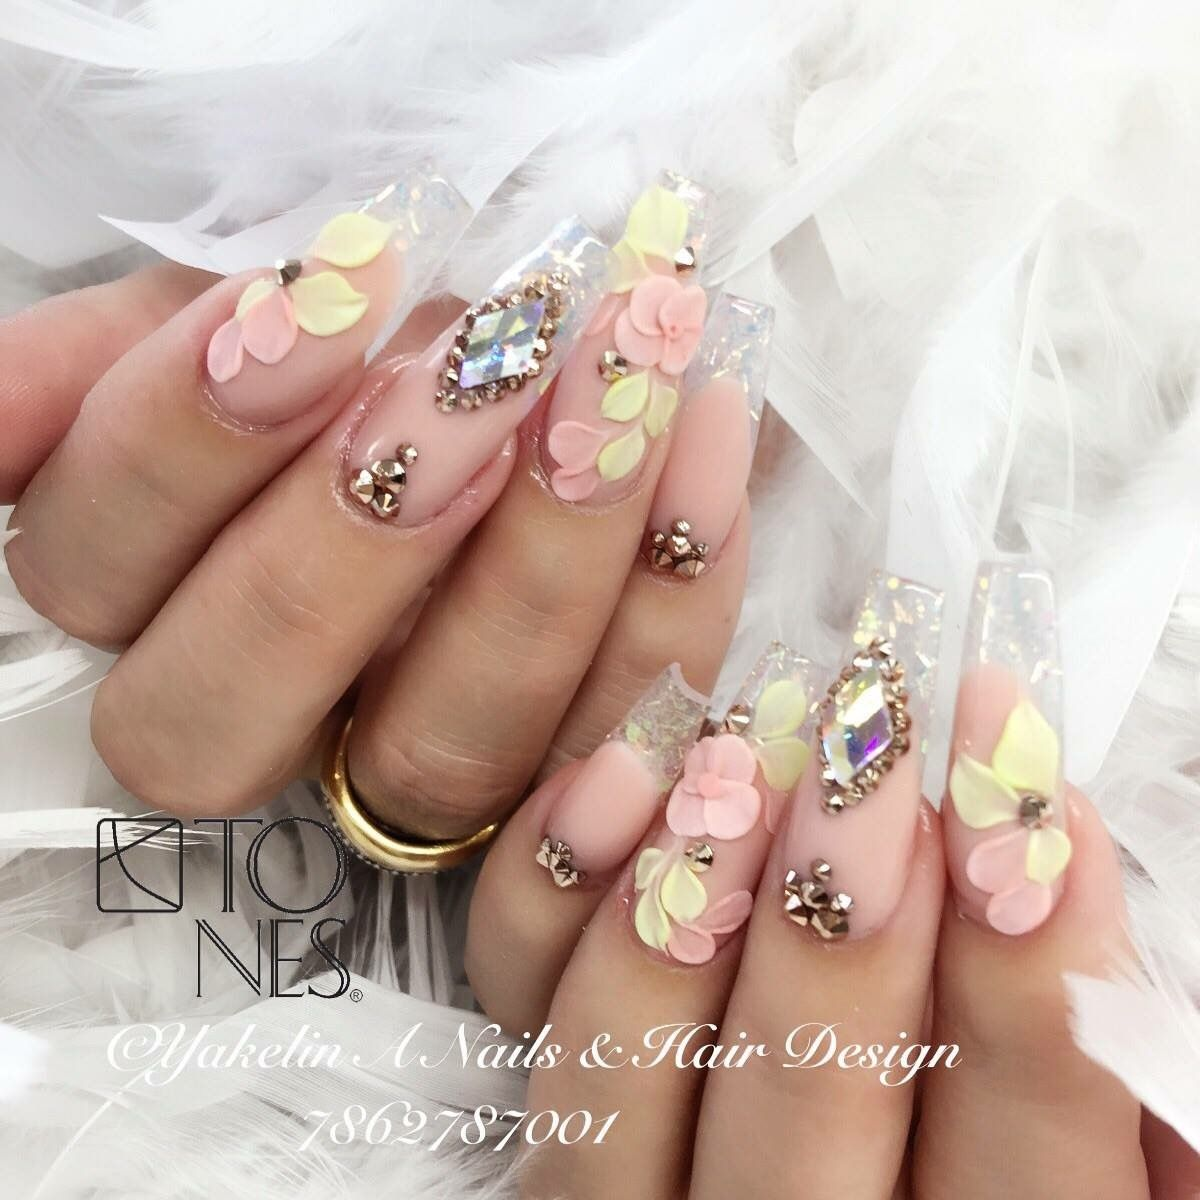 Crazy nails - Pin By 💎KIANIA💎 On CLAW COUTURE Pinterest Nail Nail, Manicure